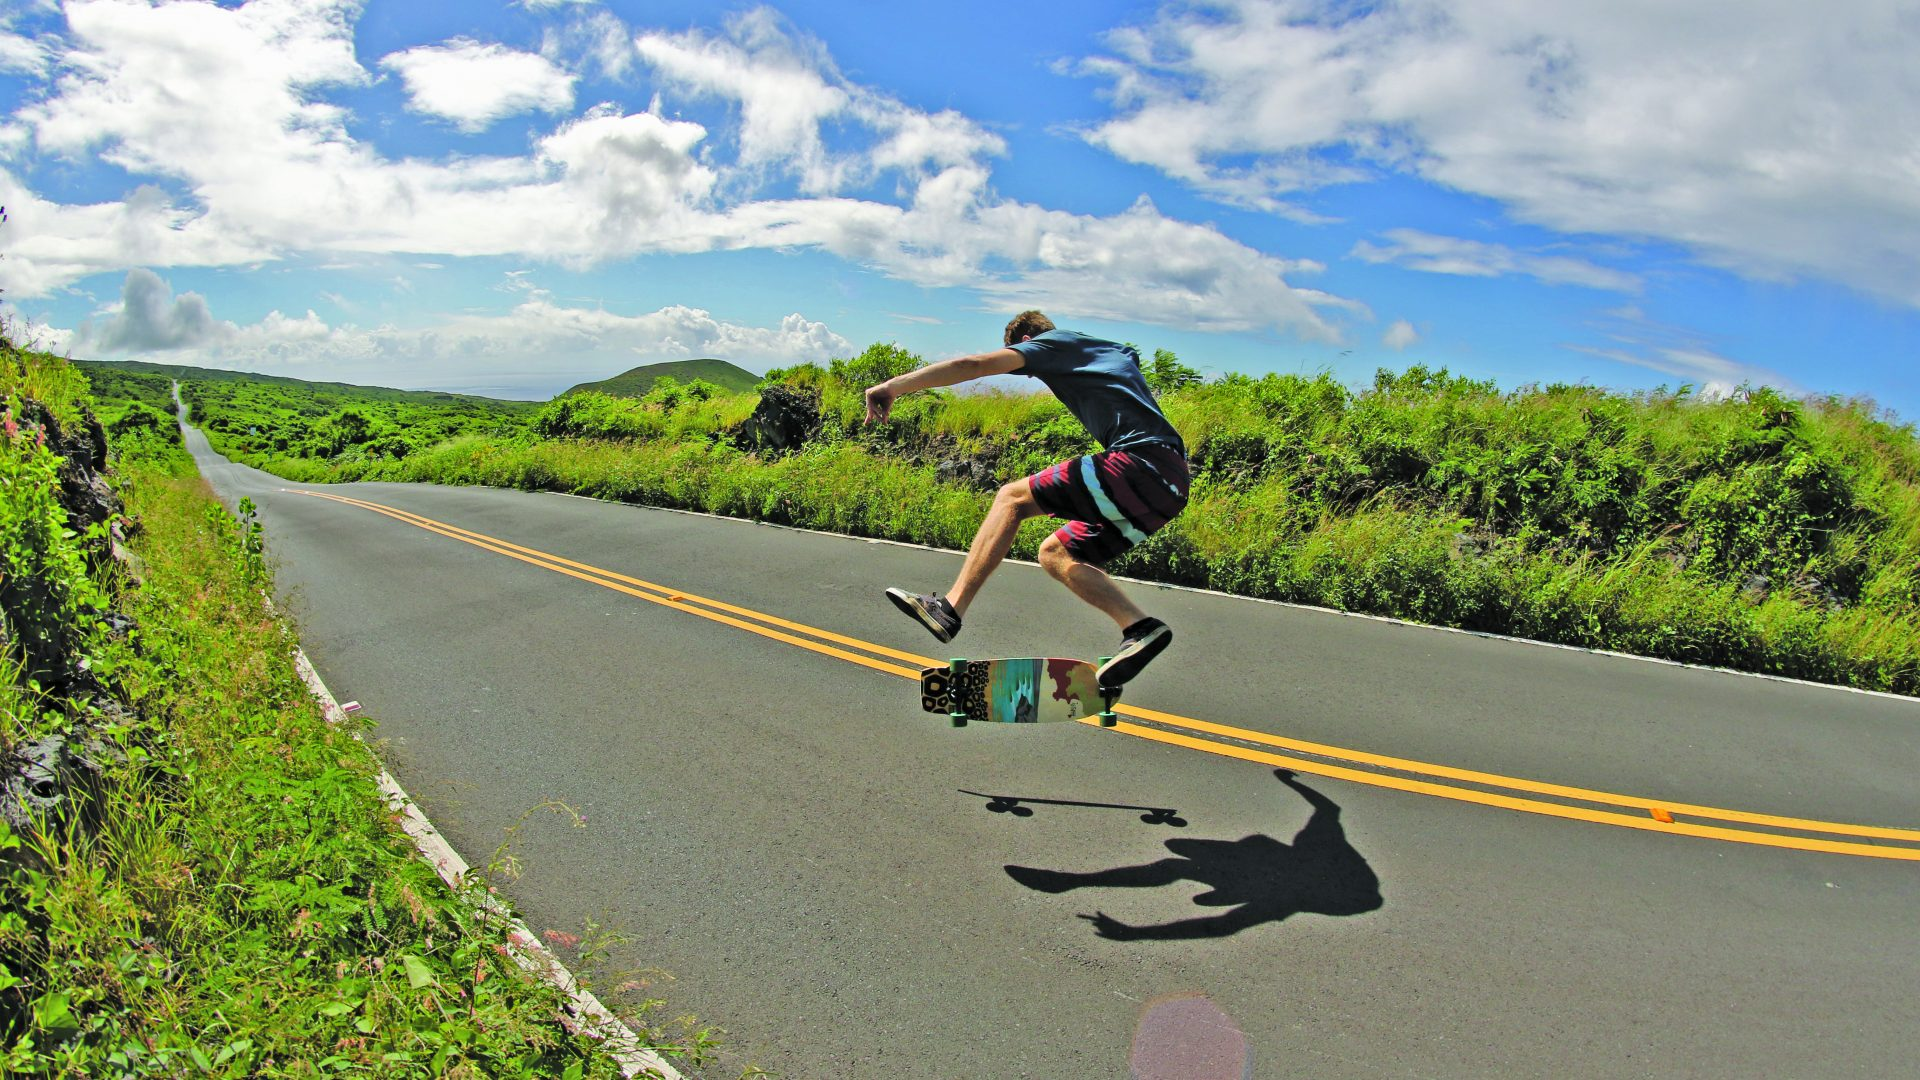 JUCKER_HAWAII_Lukas 360 flip